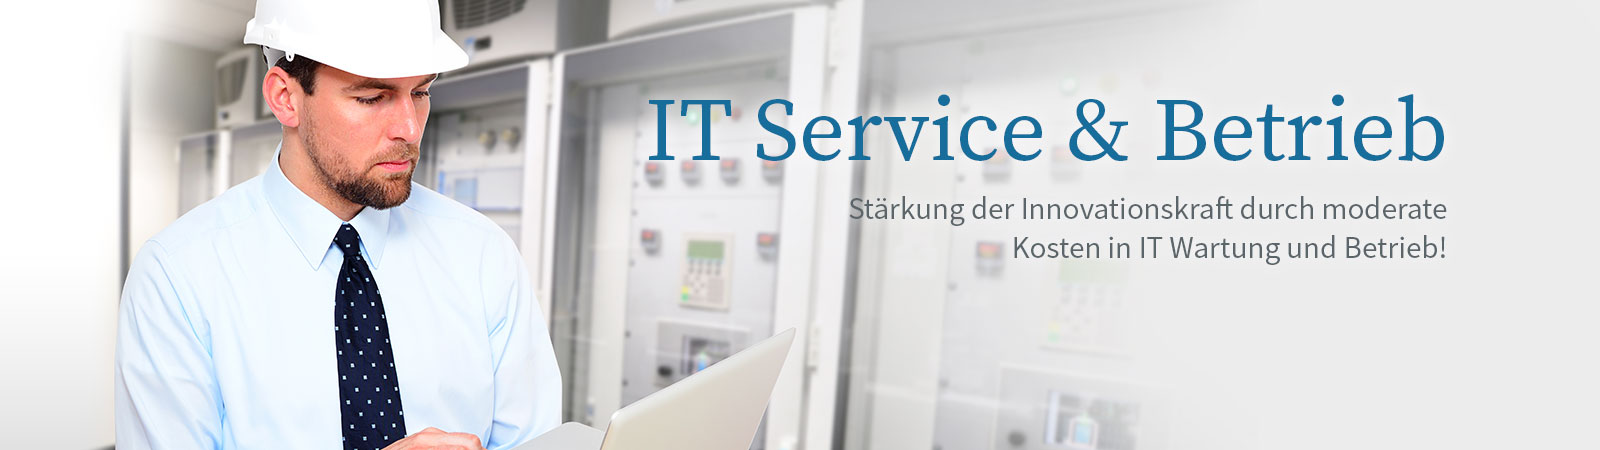 IT Service & Betrieb